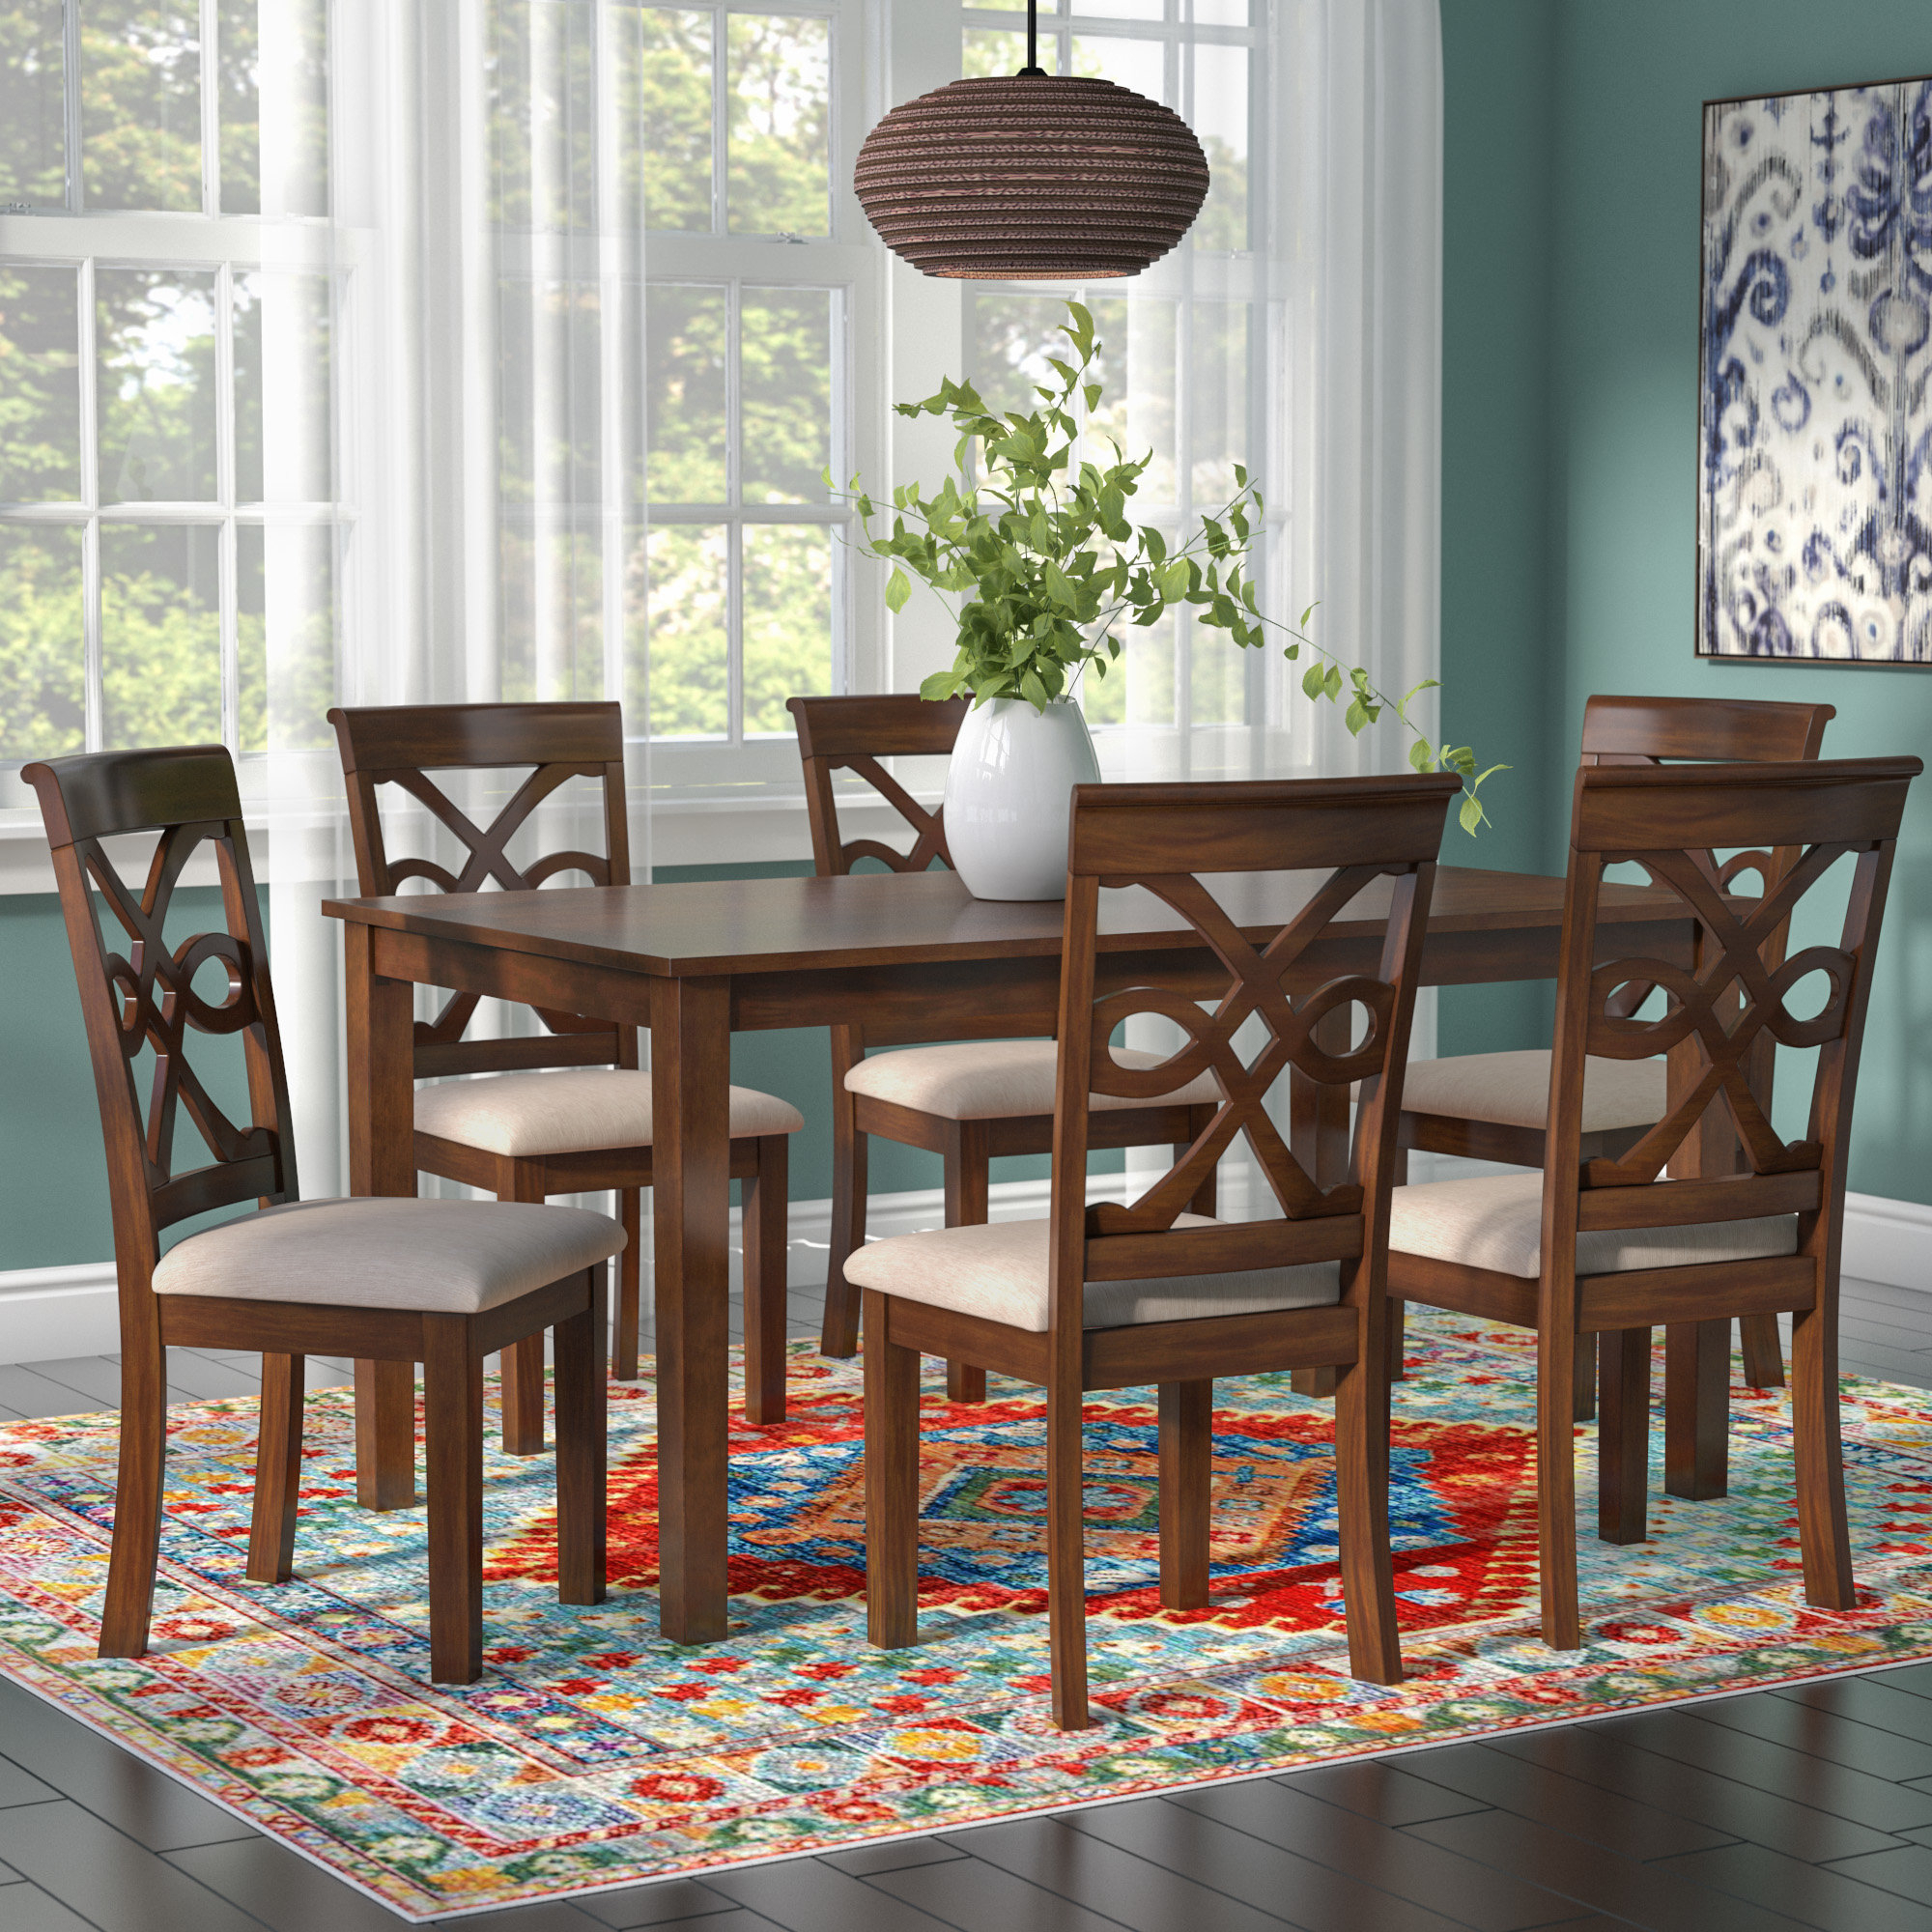 Duron 7 Piece Dining Set Pertaining To Preferred Laconia 7 Pieces Solid Wood Dining Sets (set Of 7) (View 8 of 20)